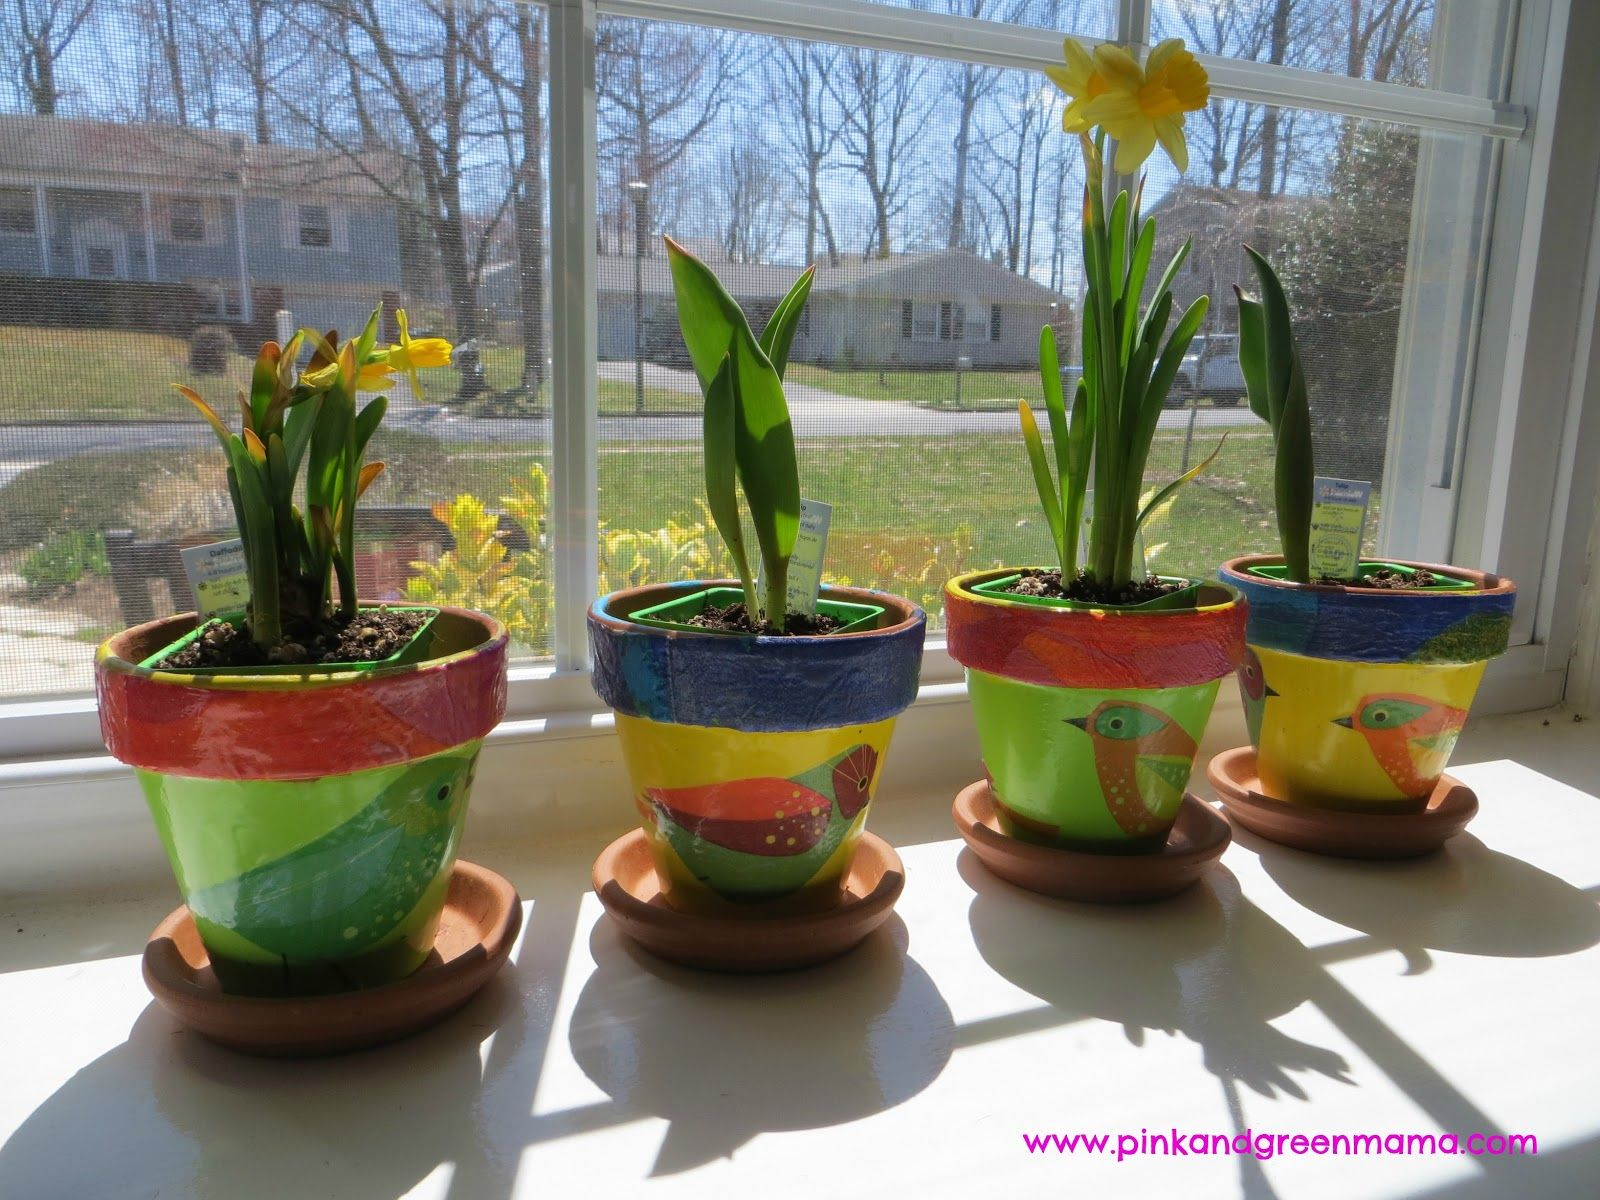 Pink And Green Mama: Spring Windowsill Garden For Children With DIY Flower  Pots Using Mod